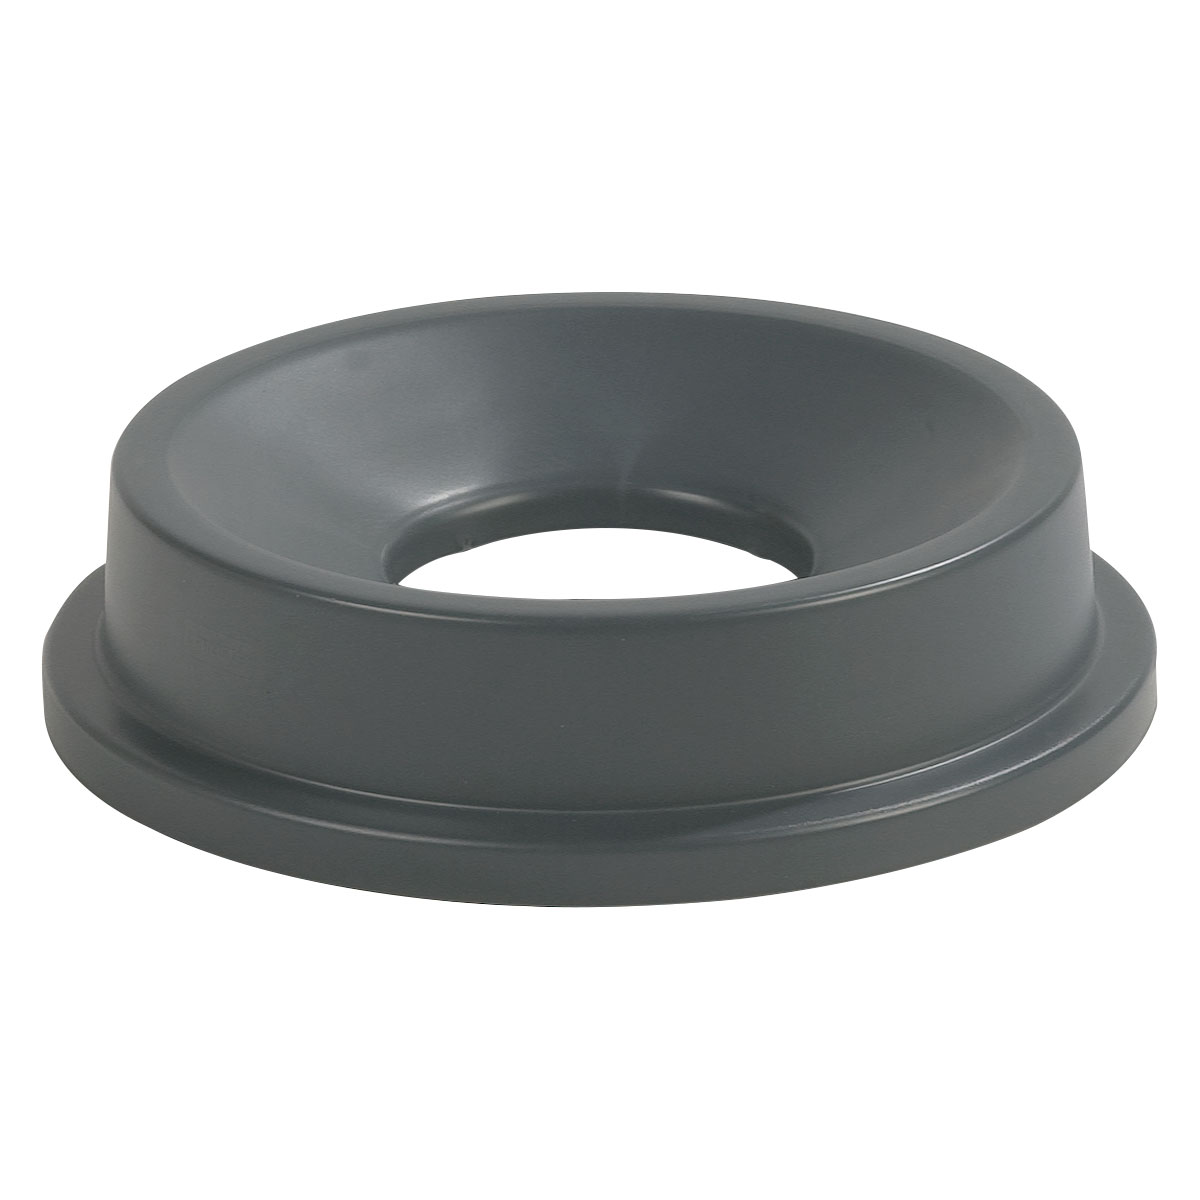 Carlisle 343124-23 Round Funnel Trash Can Lid - Plastic, Gray